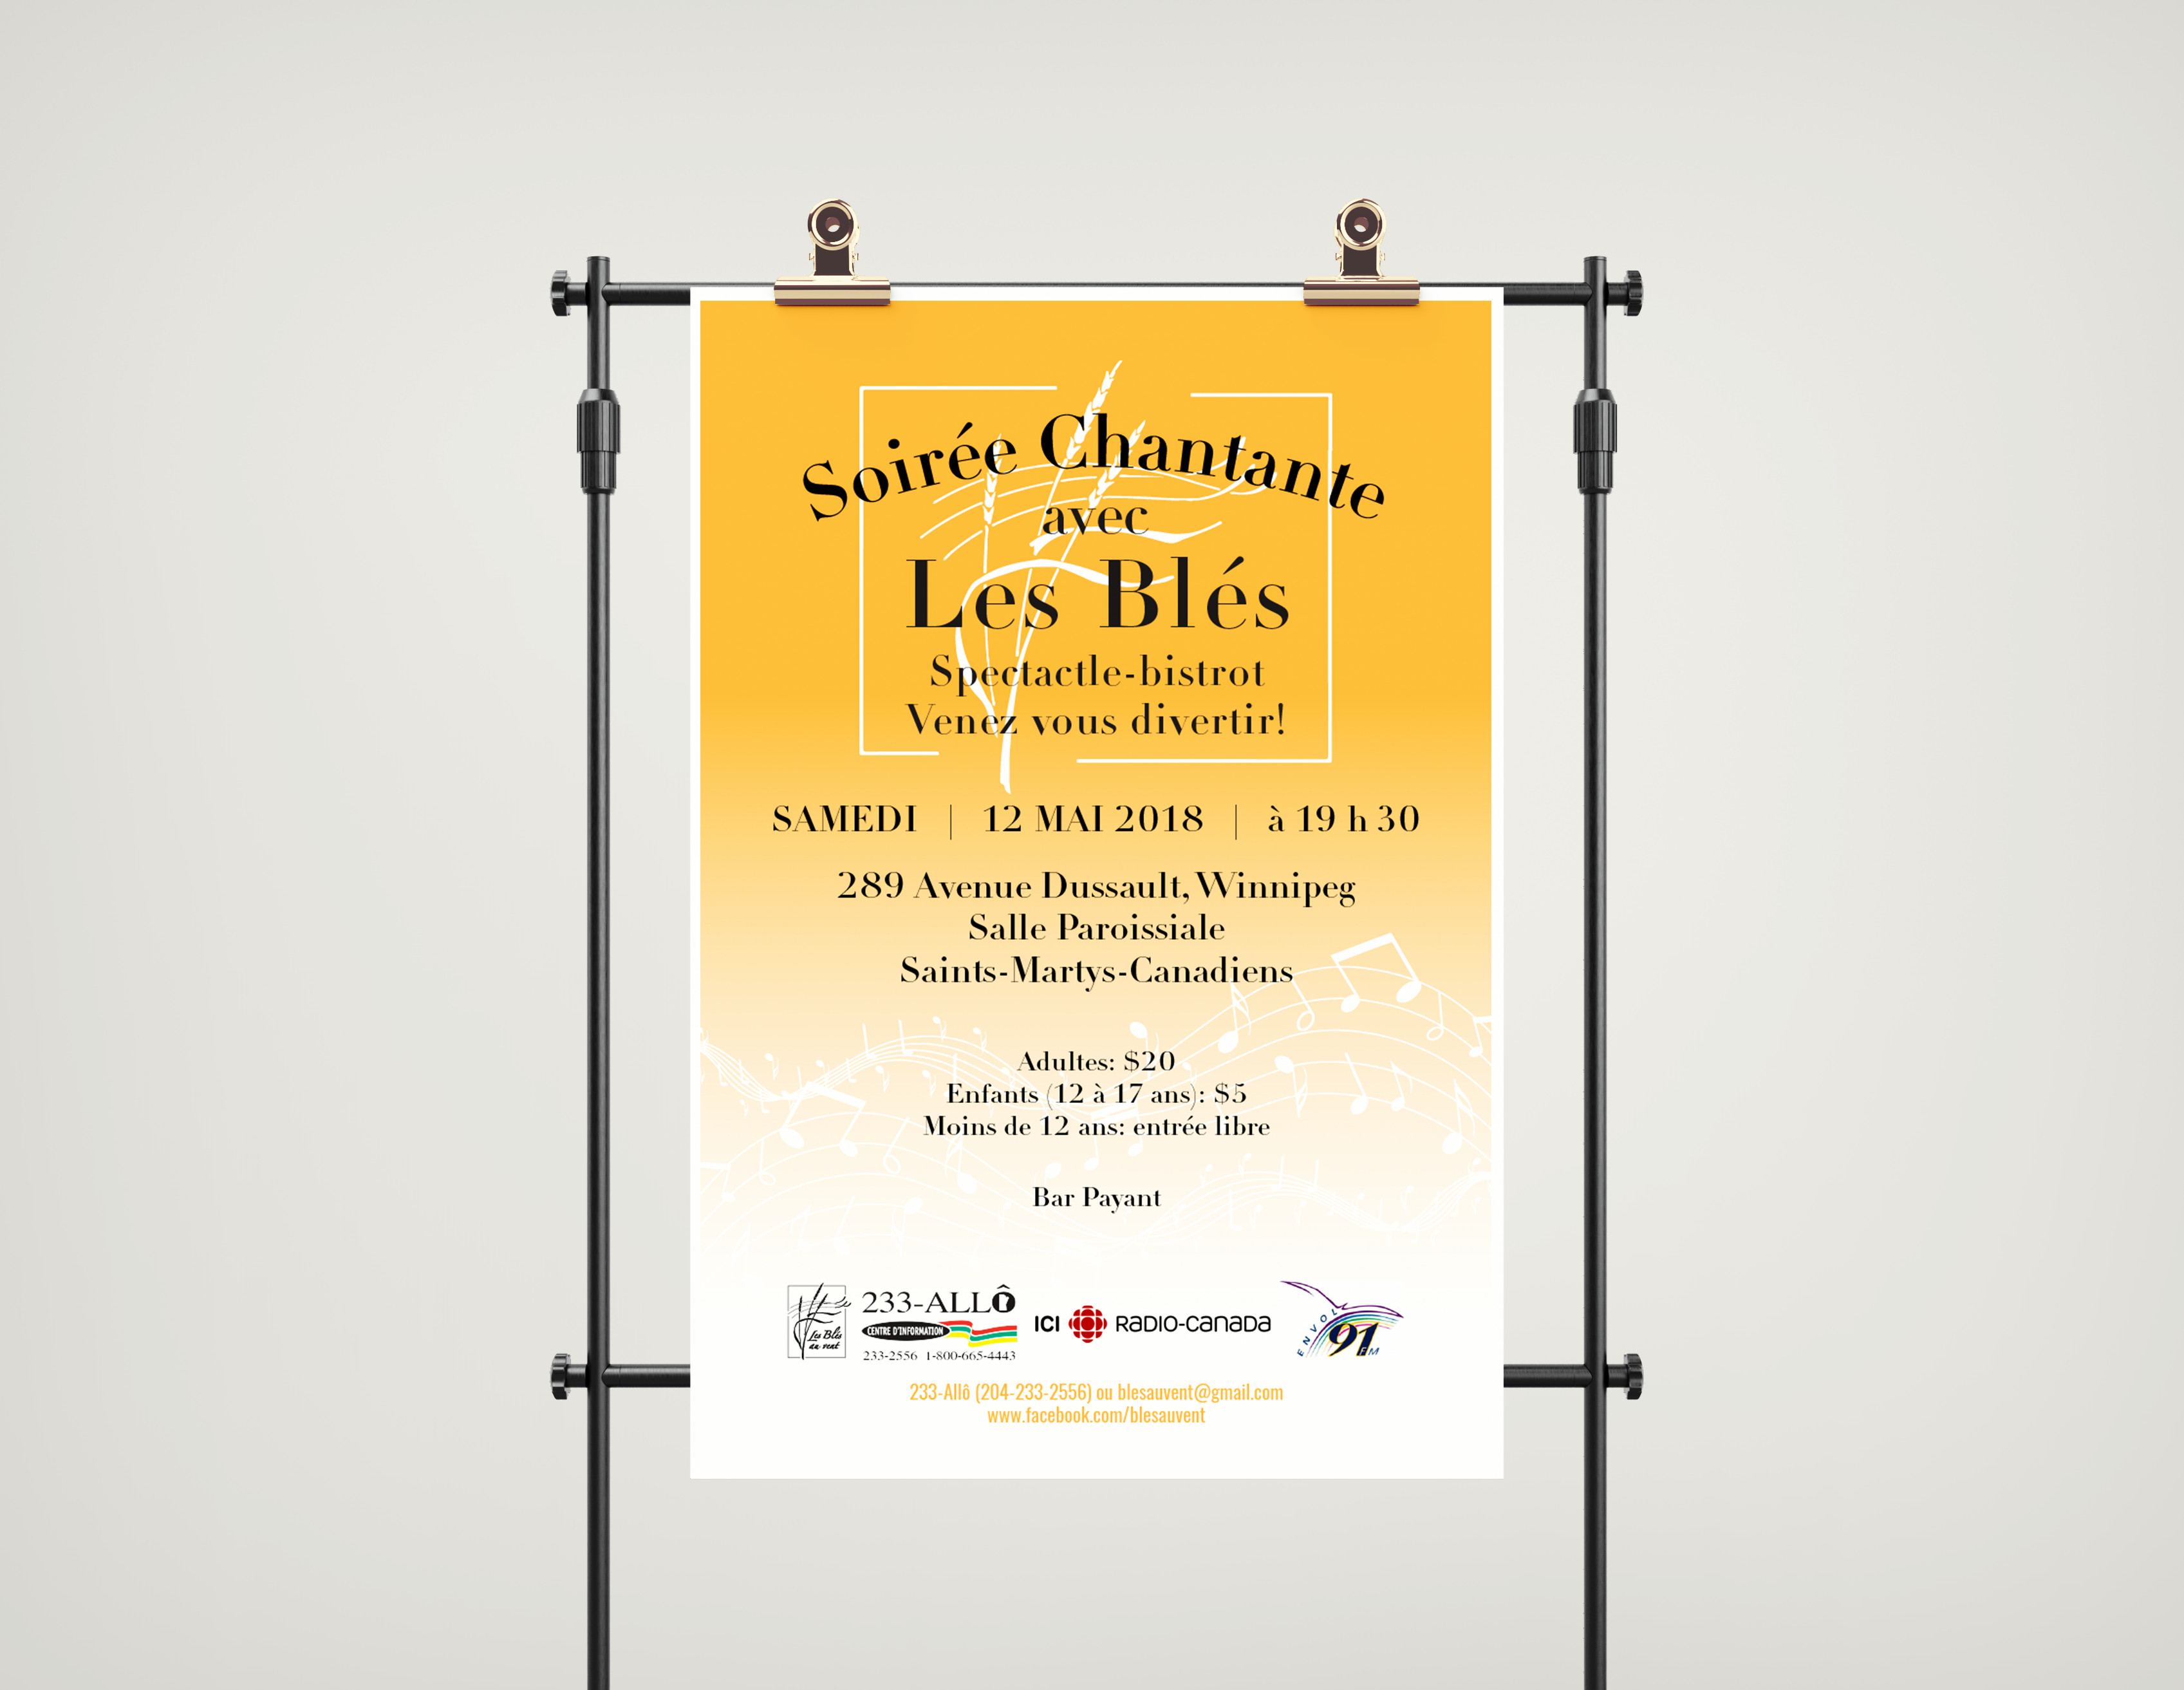 The 2018 concert poster.